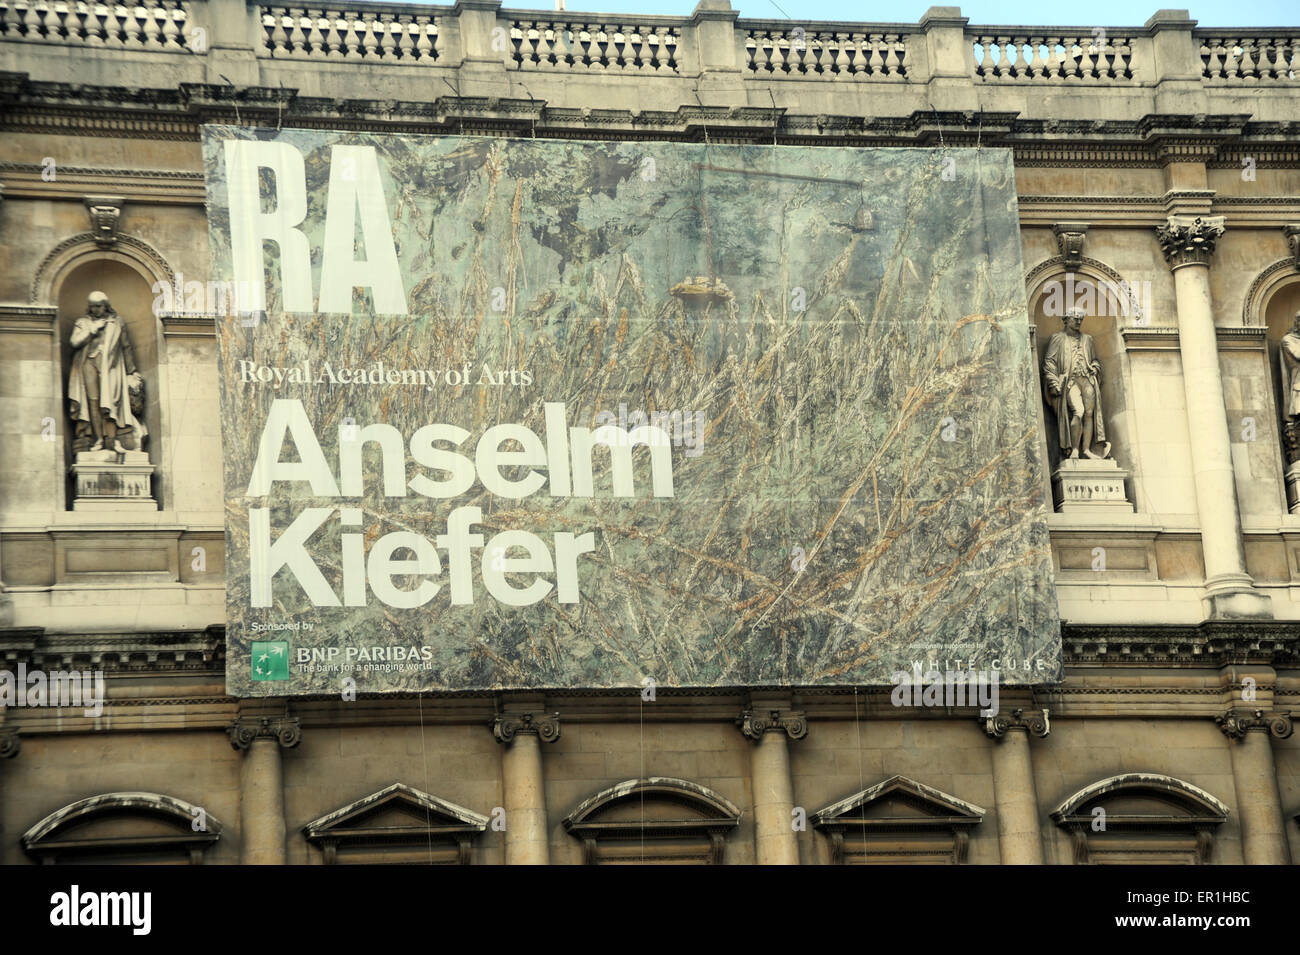 London, UK, 30 September 2014, Anselm Kiefer exhibition in forecourt of the Royal Academy of Arts in Piccadilly. - Stock Image